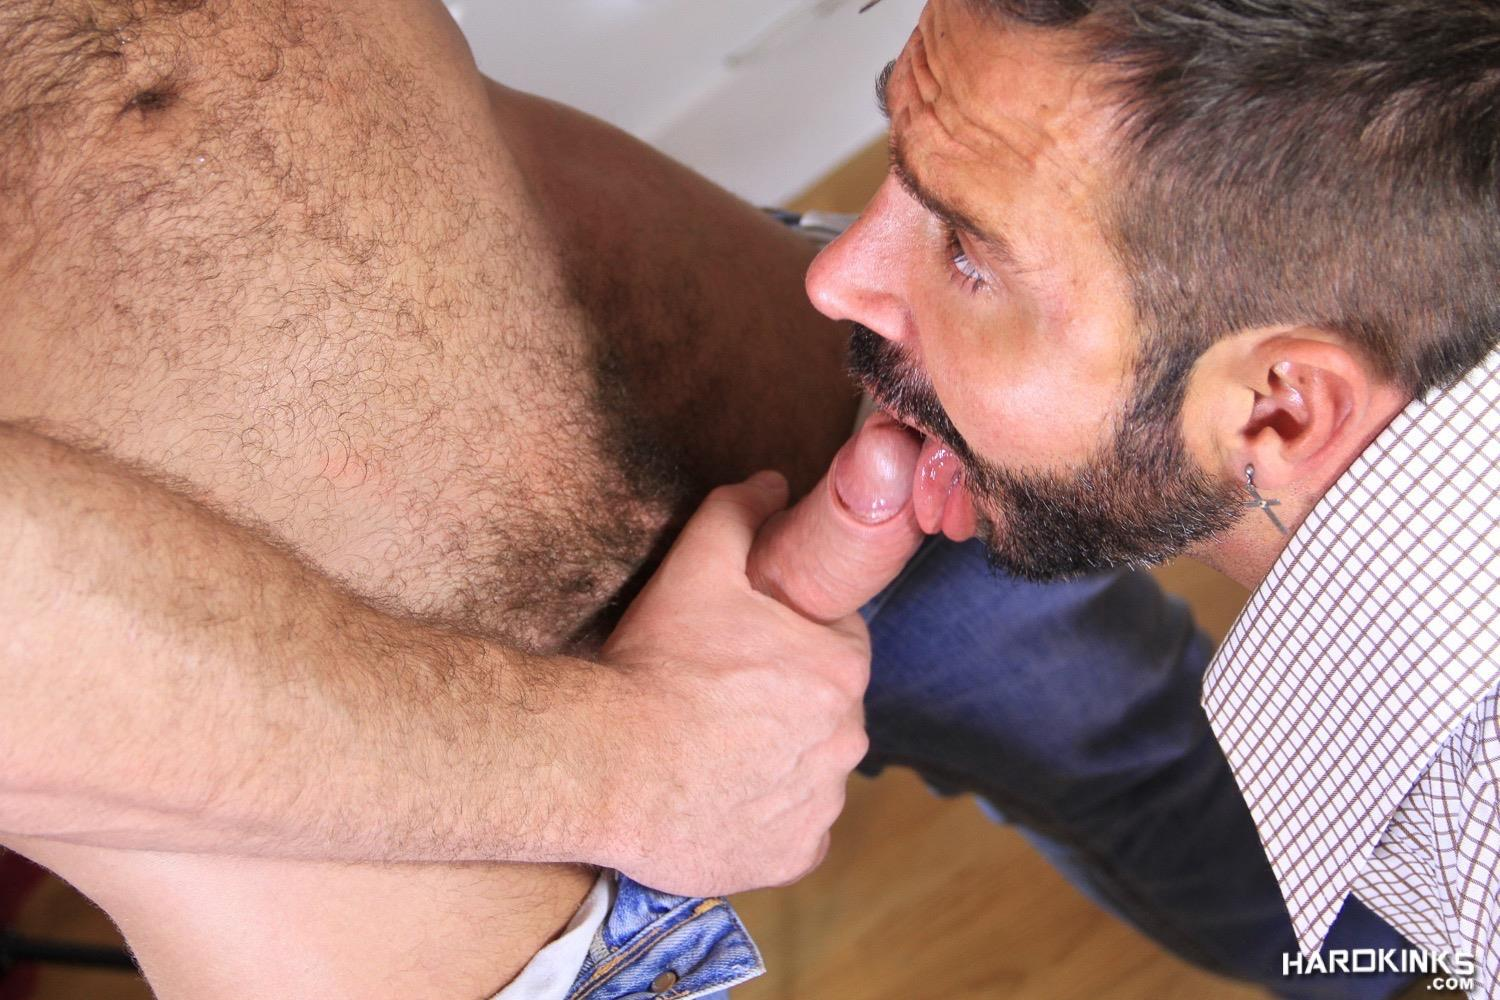 Hardkinks Jessy Ares and Martin Mazza Hairy Alpha Male Amateur Gay Porn 26 Hairy Muscle Alpha Male Dominates His Coworker